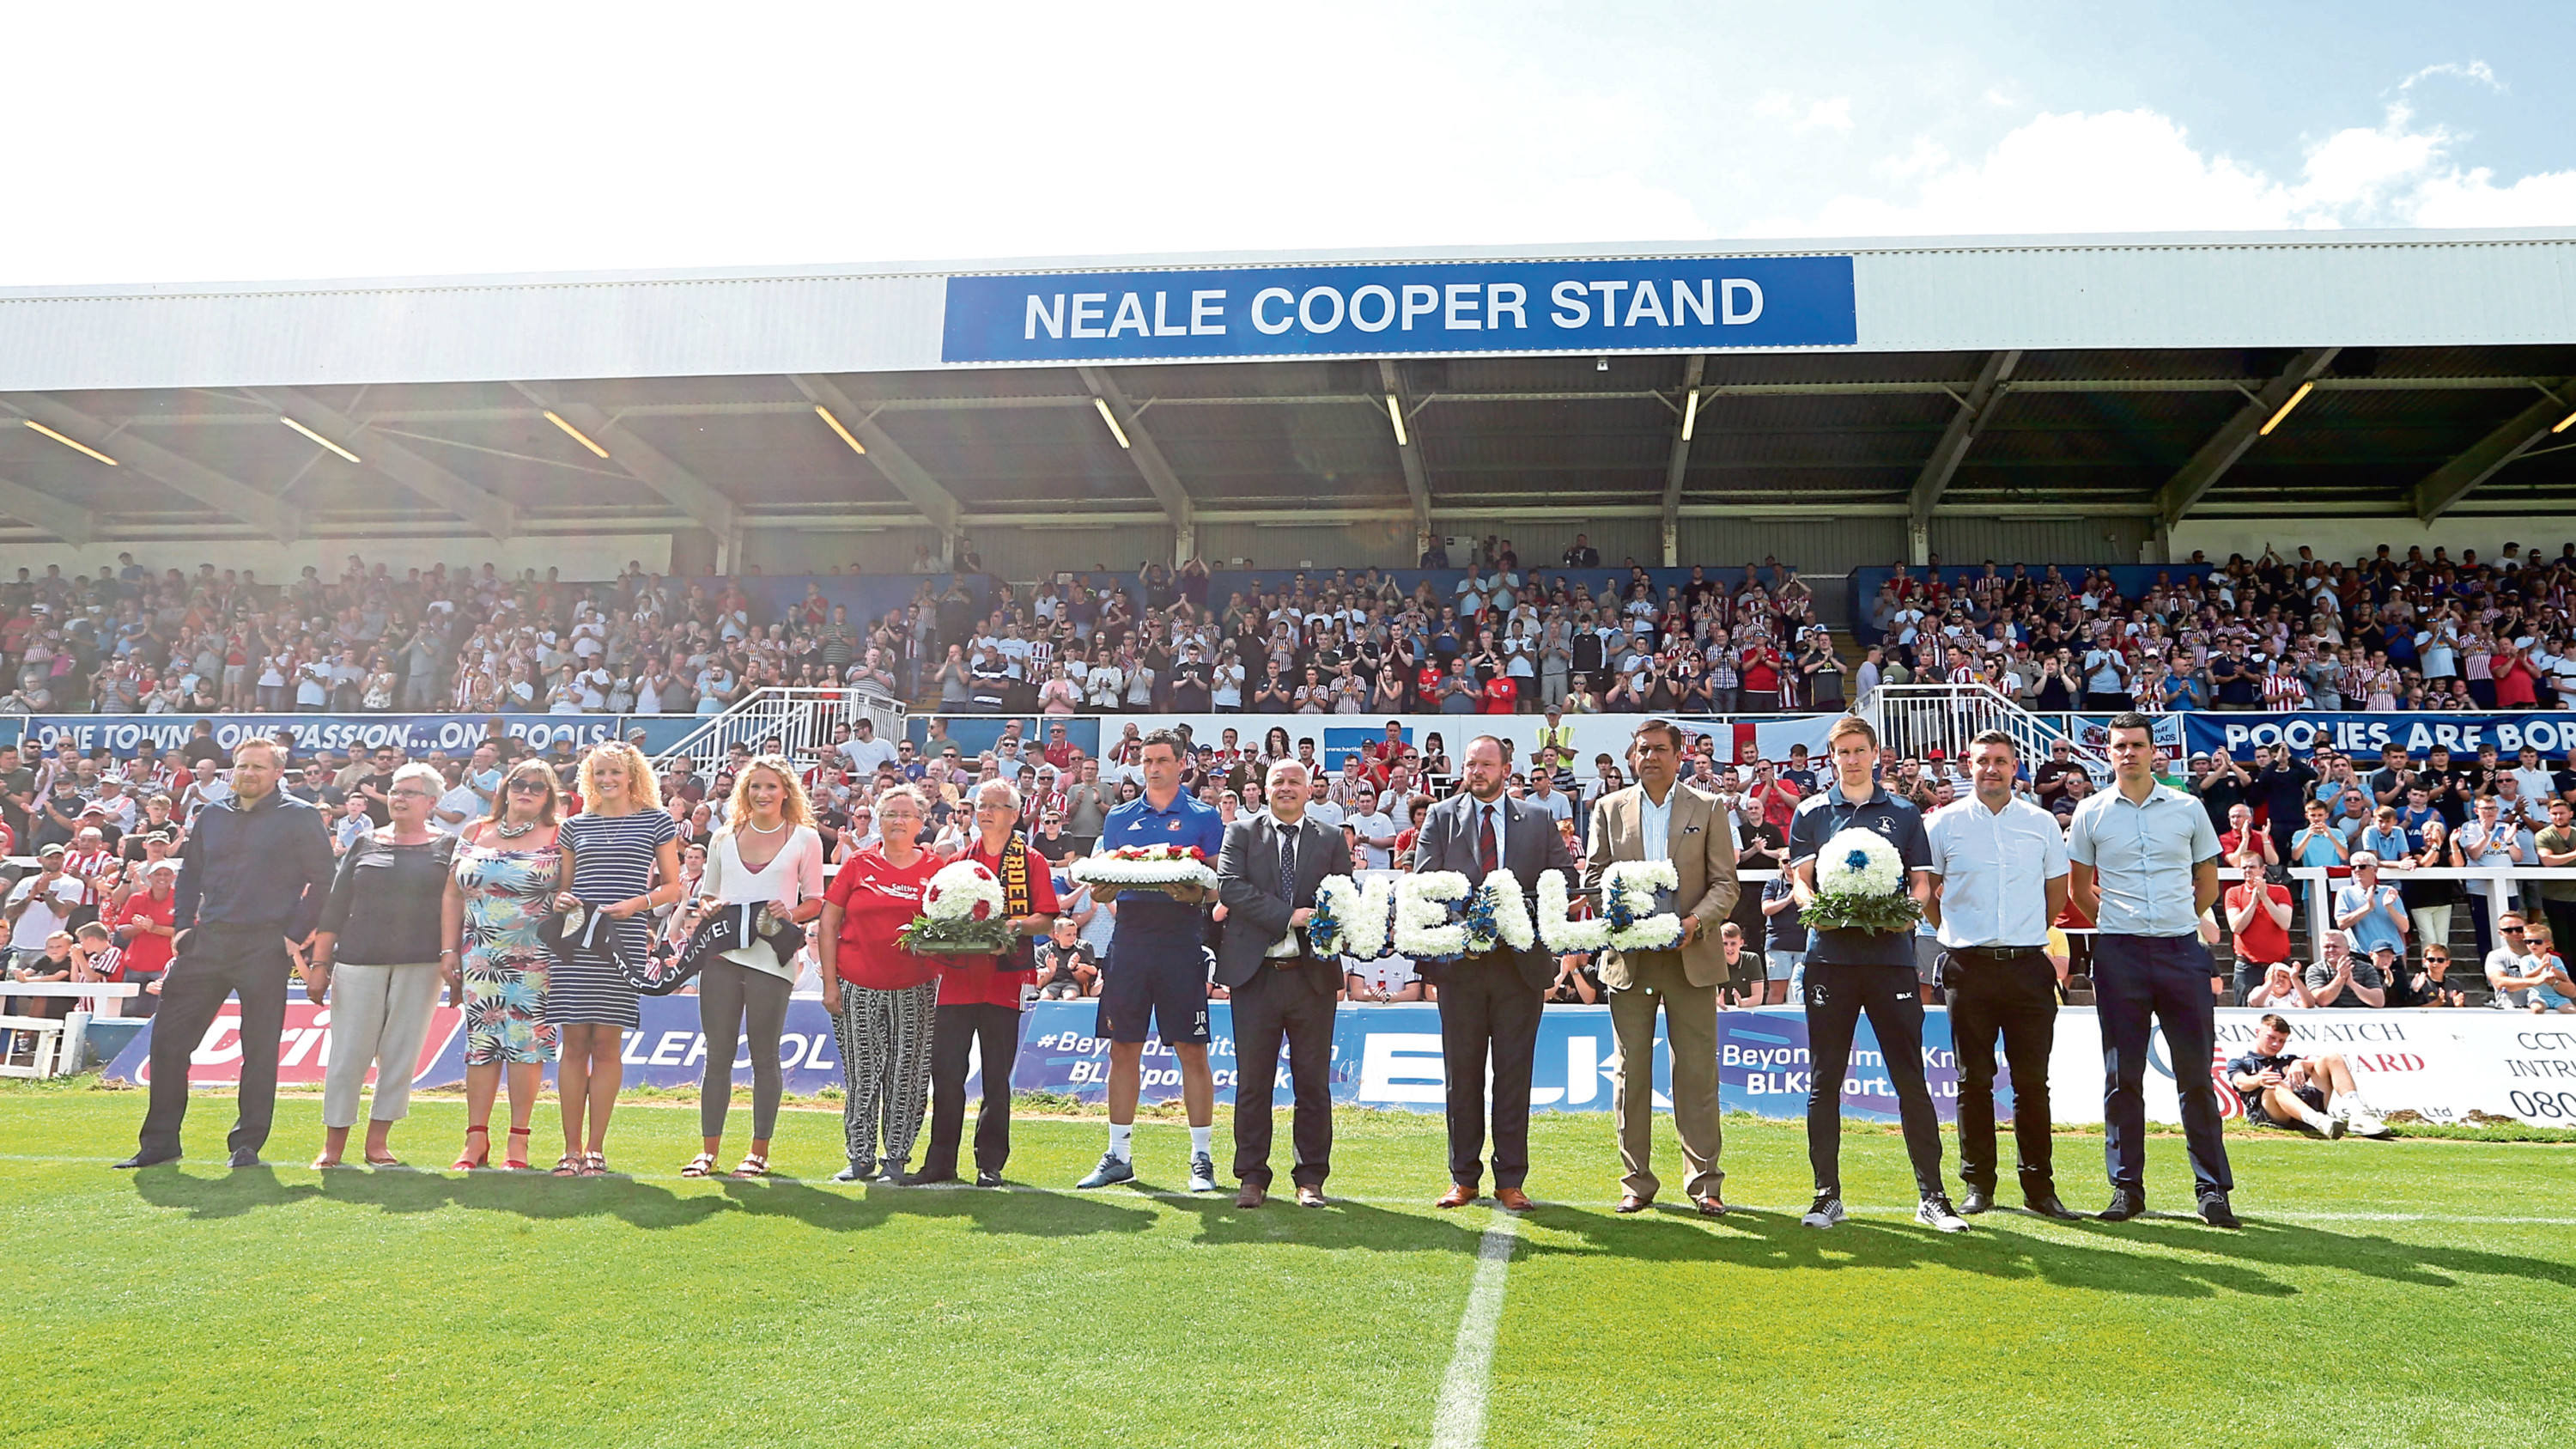 A minute's applause was held before the game